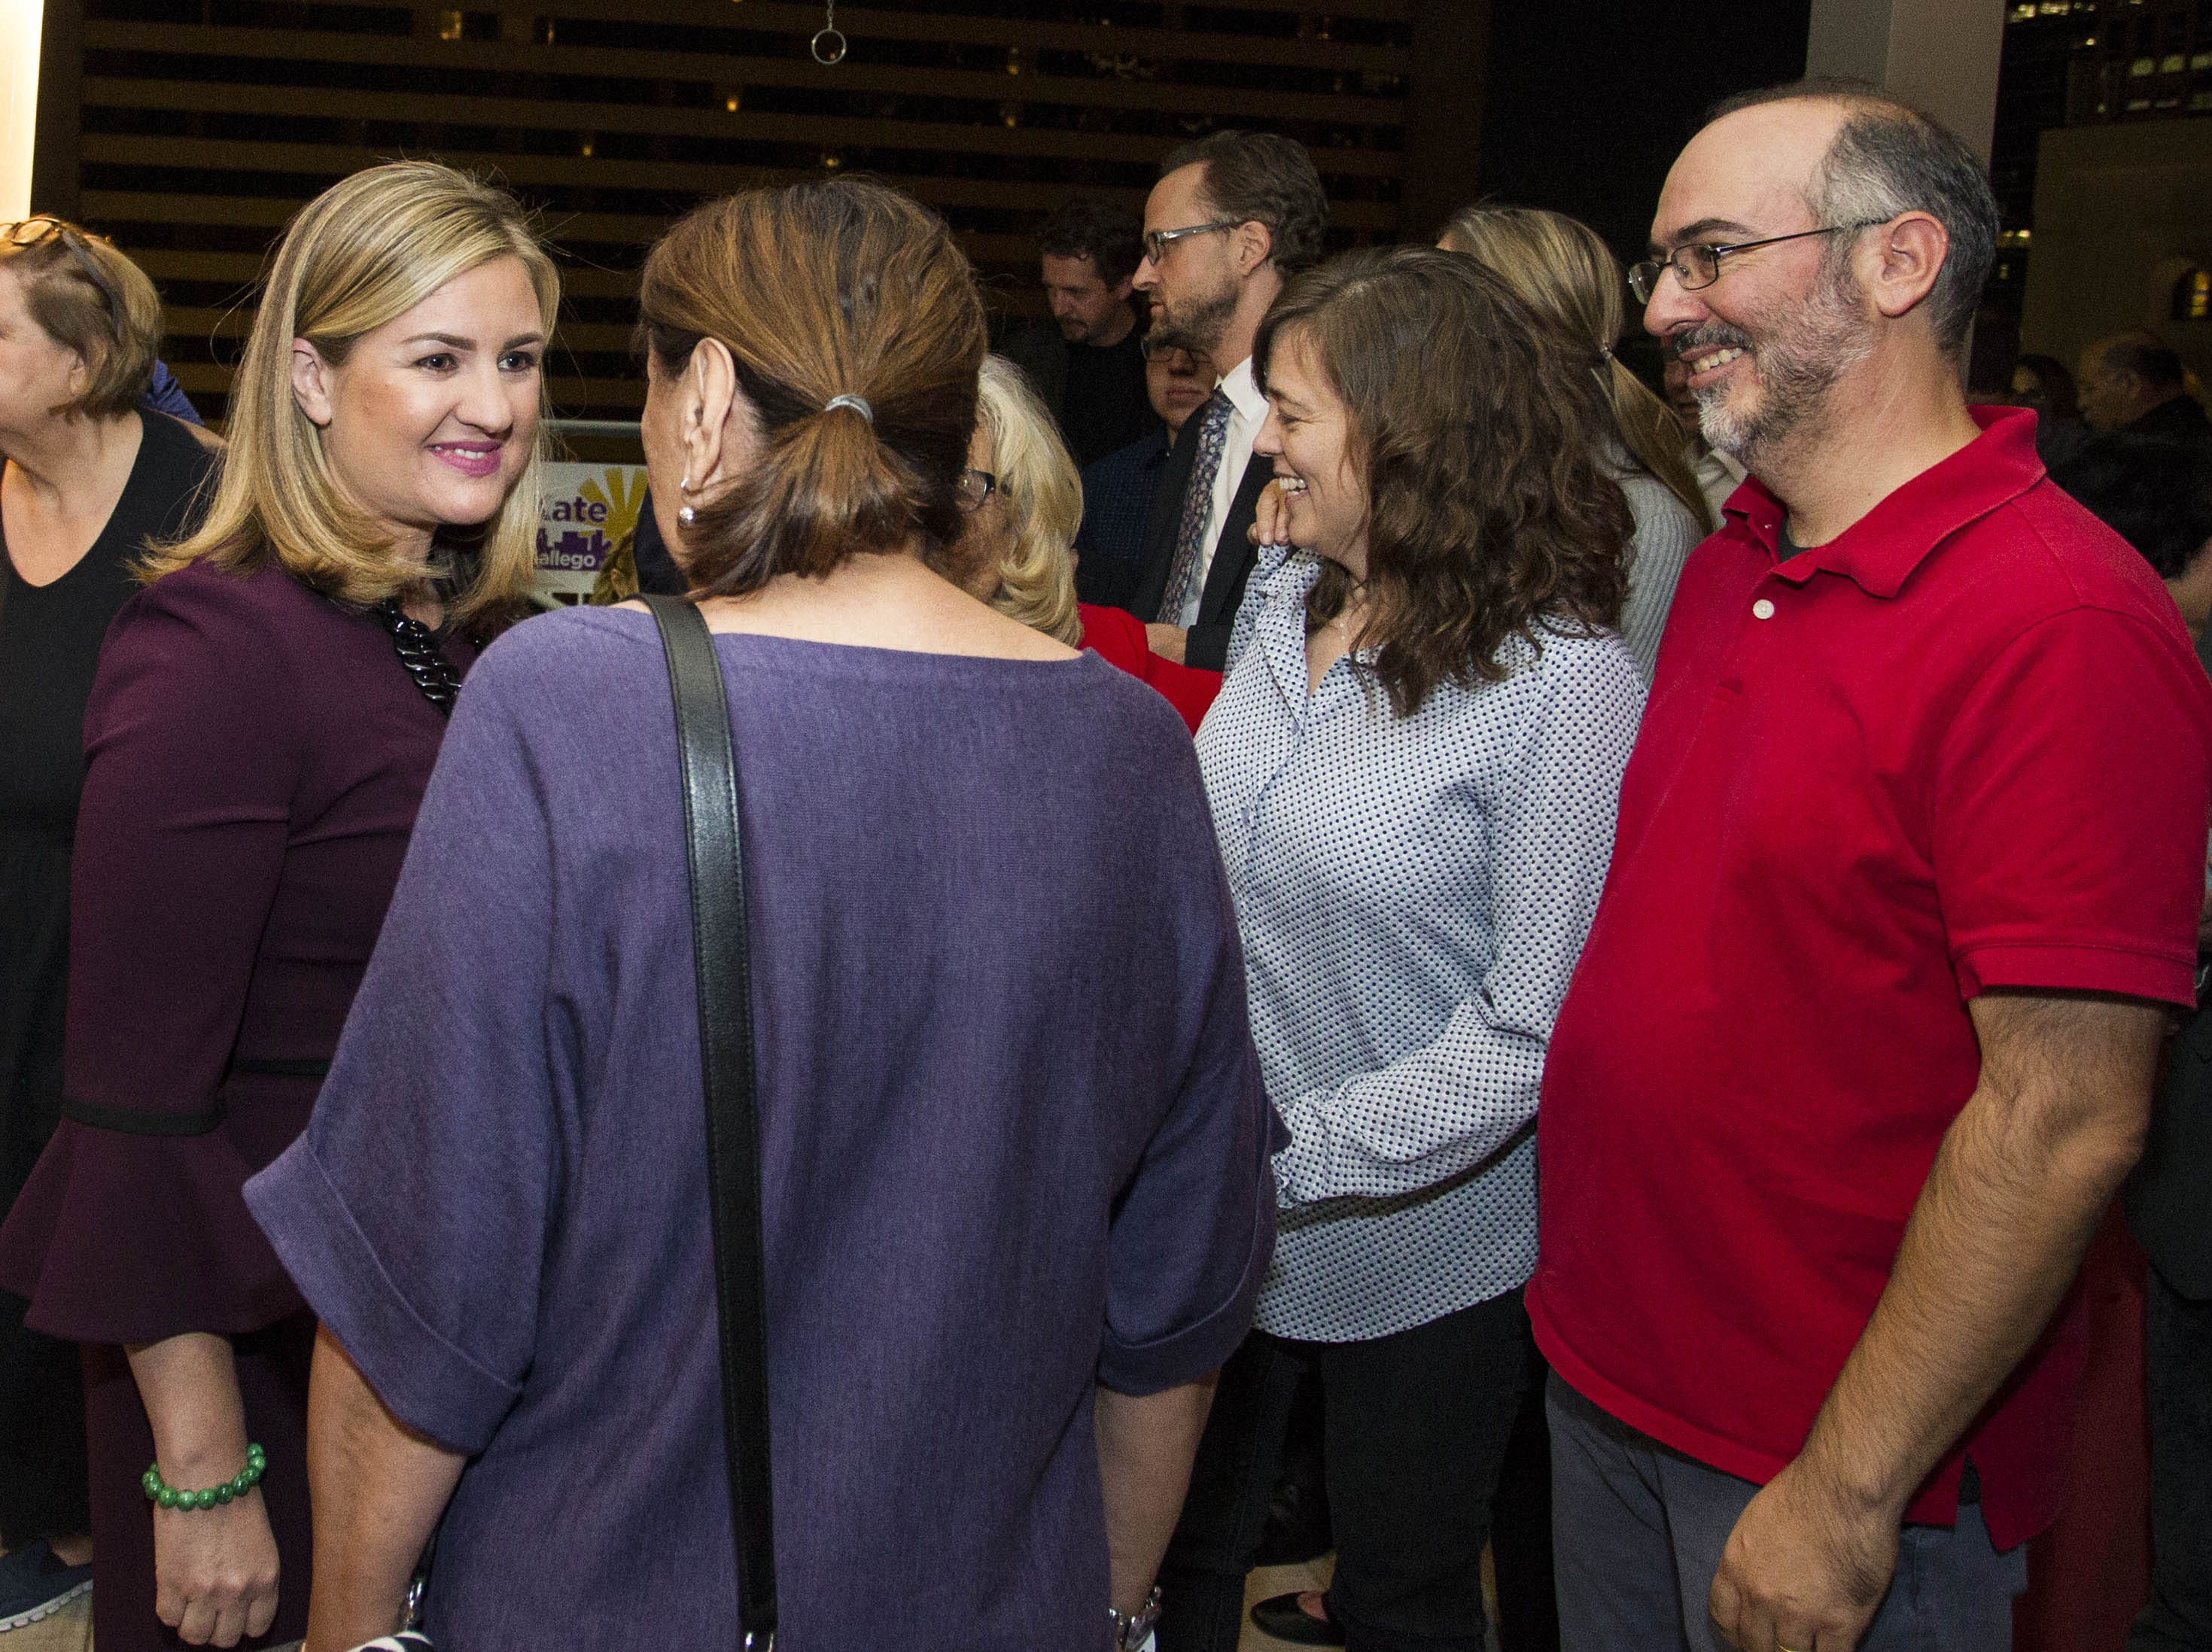 Phoenix mayoral candidate Kate Gallego talks to constituents at the Hilton Garden Inn in Phoenix on Nov. 6, 2018.